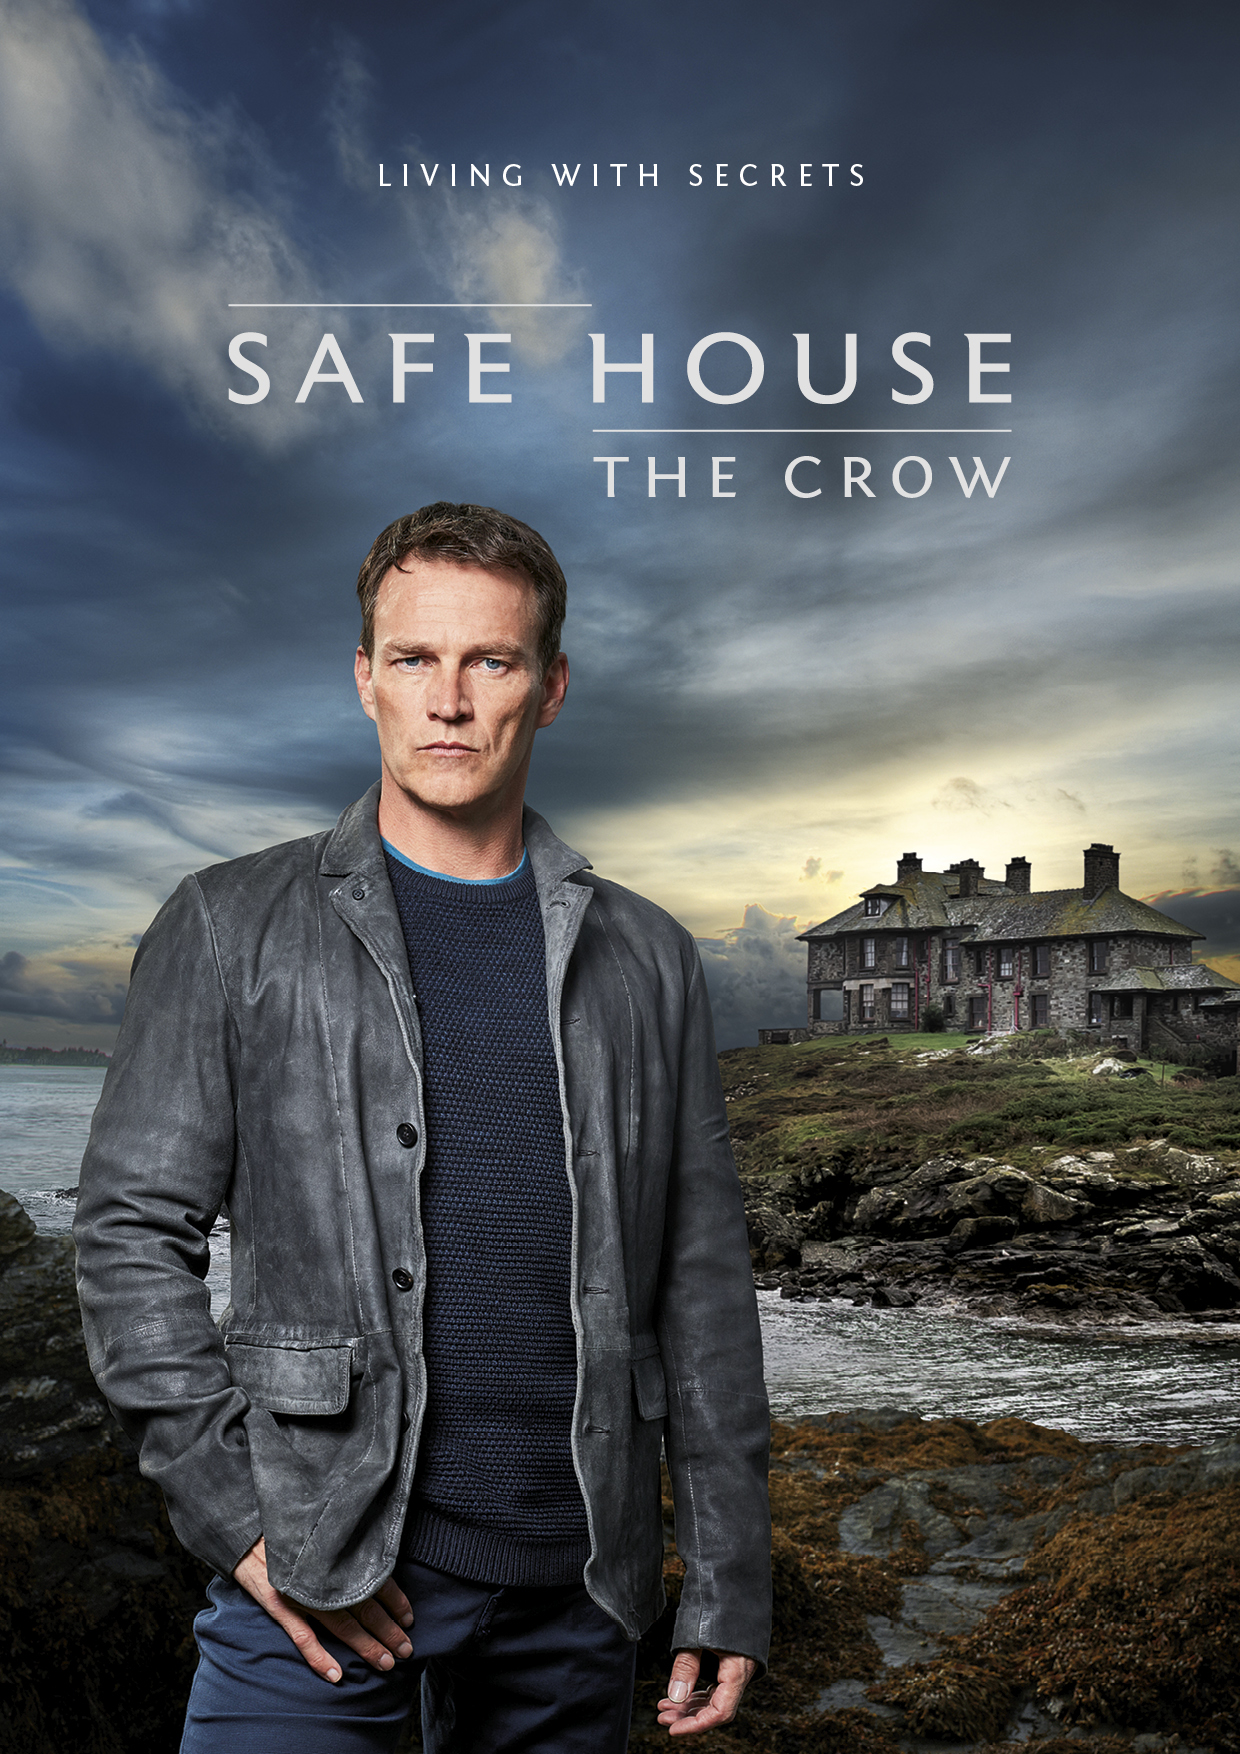 J9987_SAFEHOUSE_THE_CROW_4PP_A4_SALES_SHEET_AW.jpg